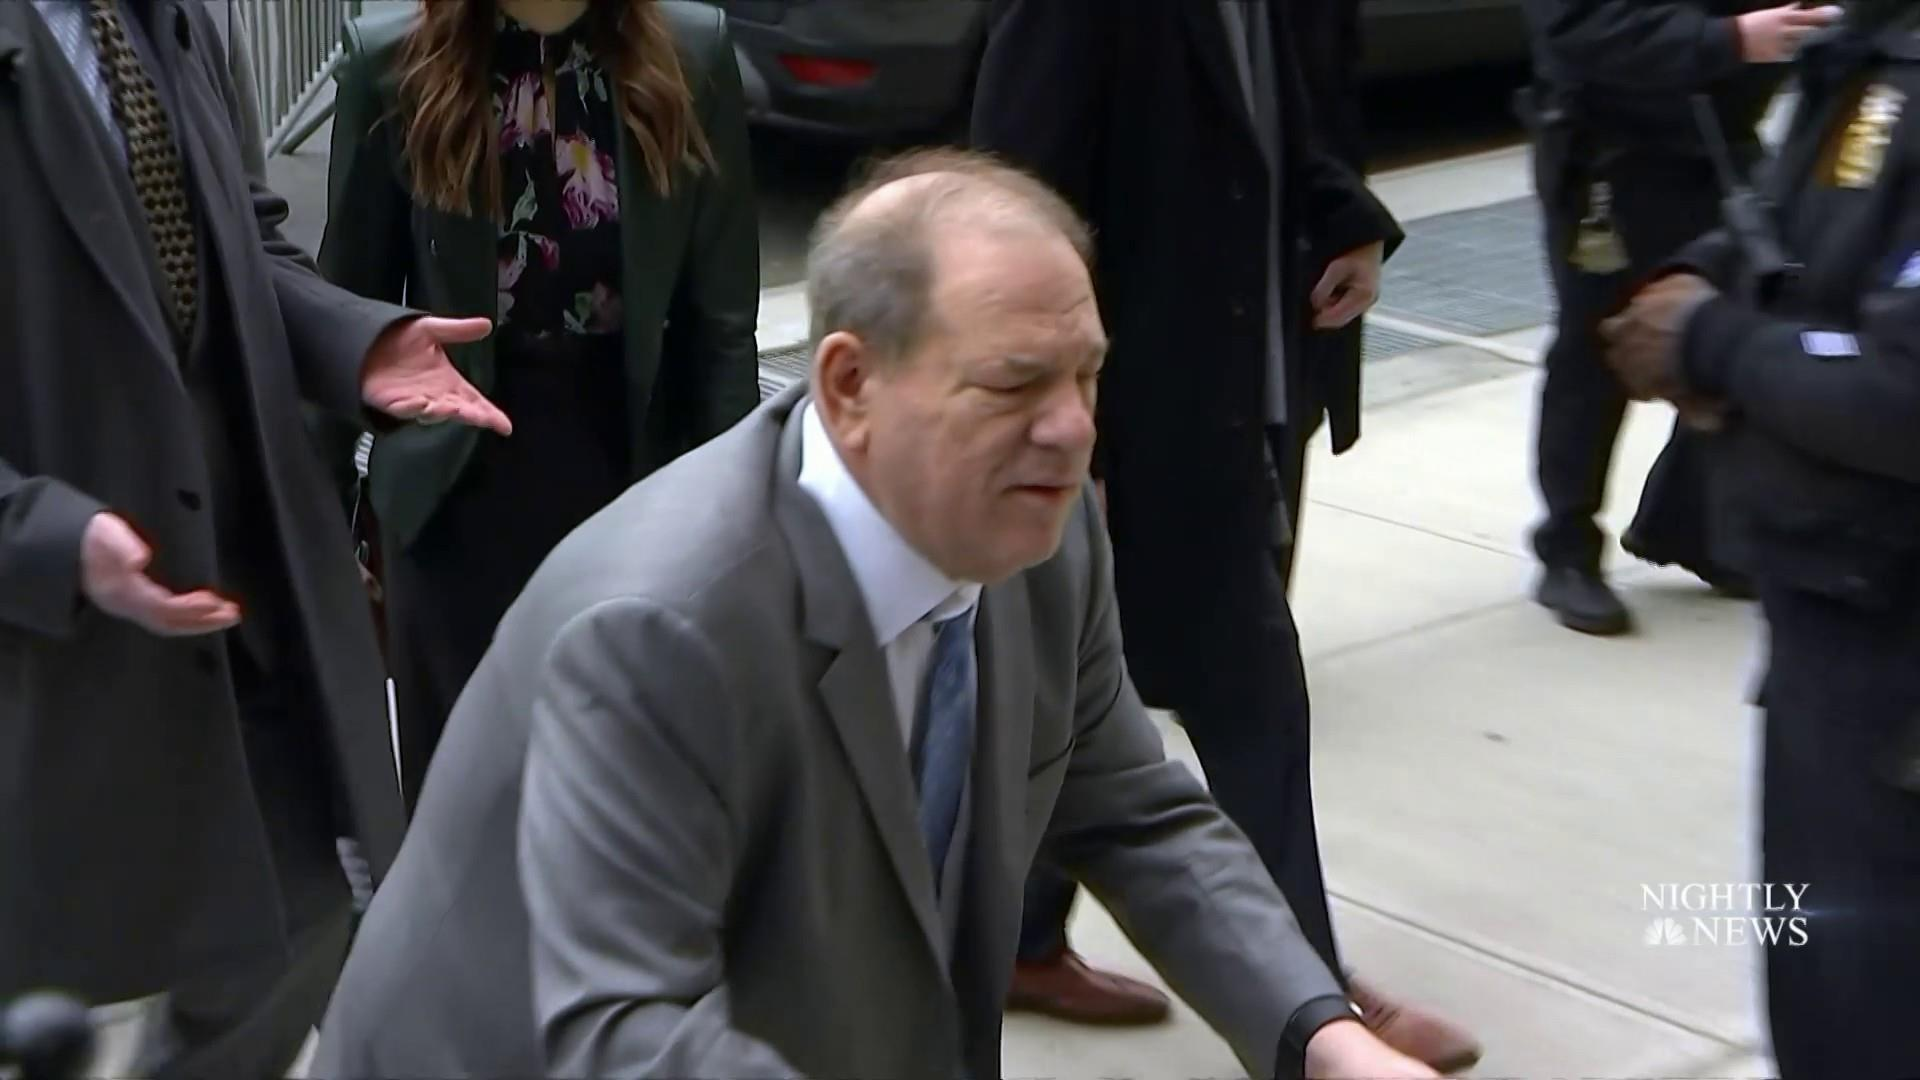 Jury in Harvey Weinstein sexual assault trial ends first day of deliberations without a verdict